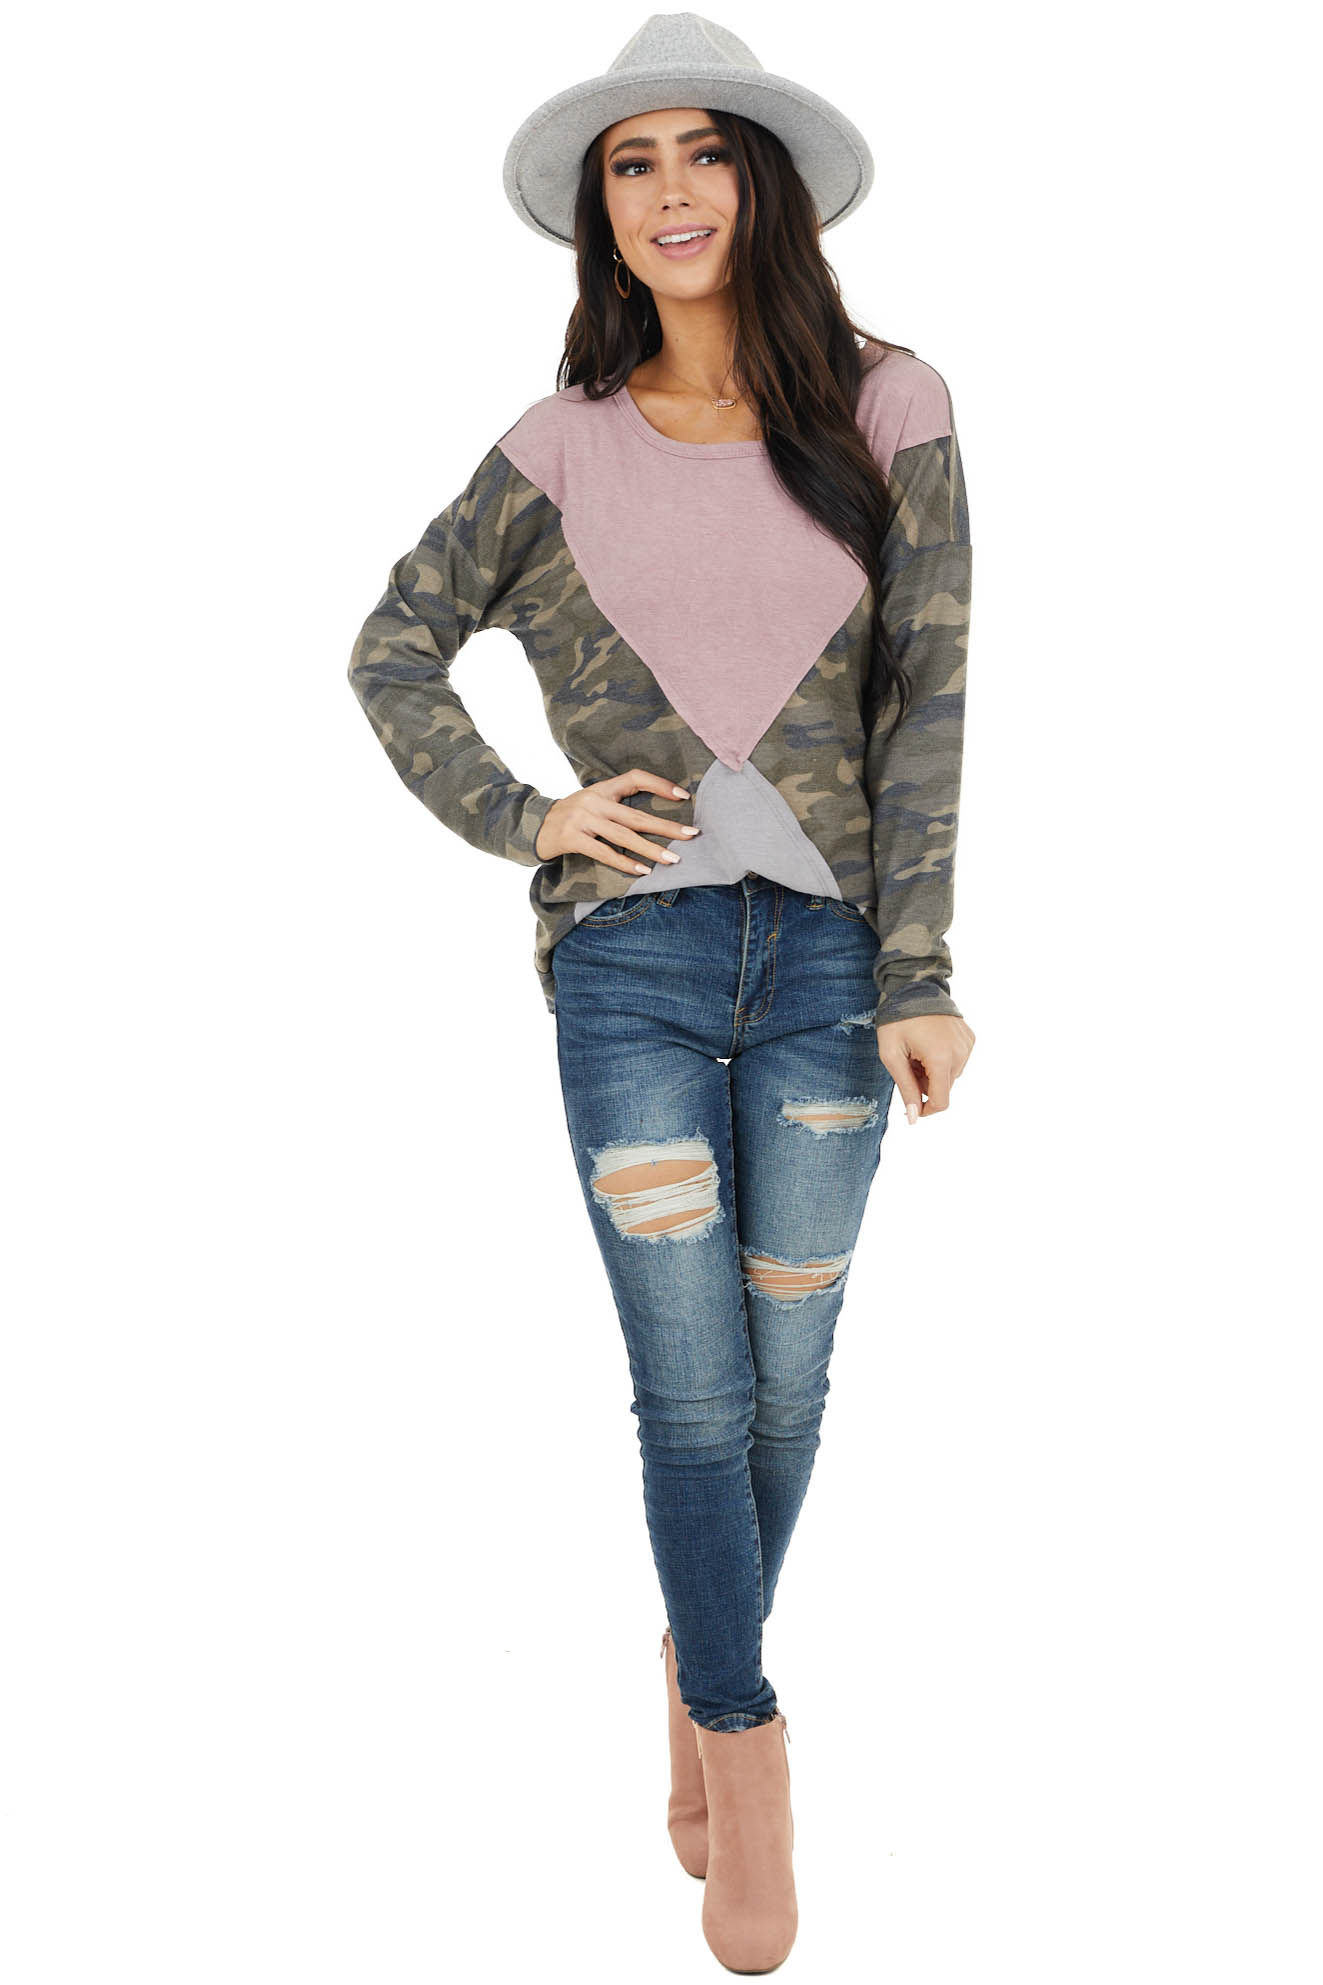 Camo Colorblock Long Sleeve Knit Top with Raw Edge Detail